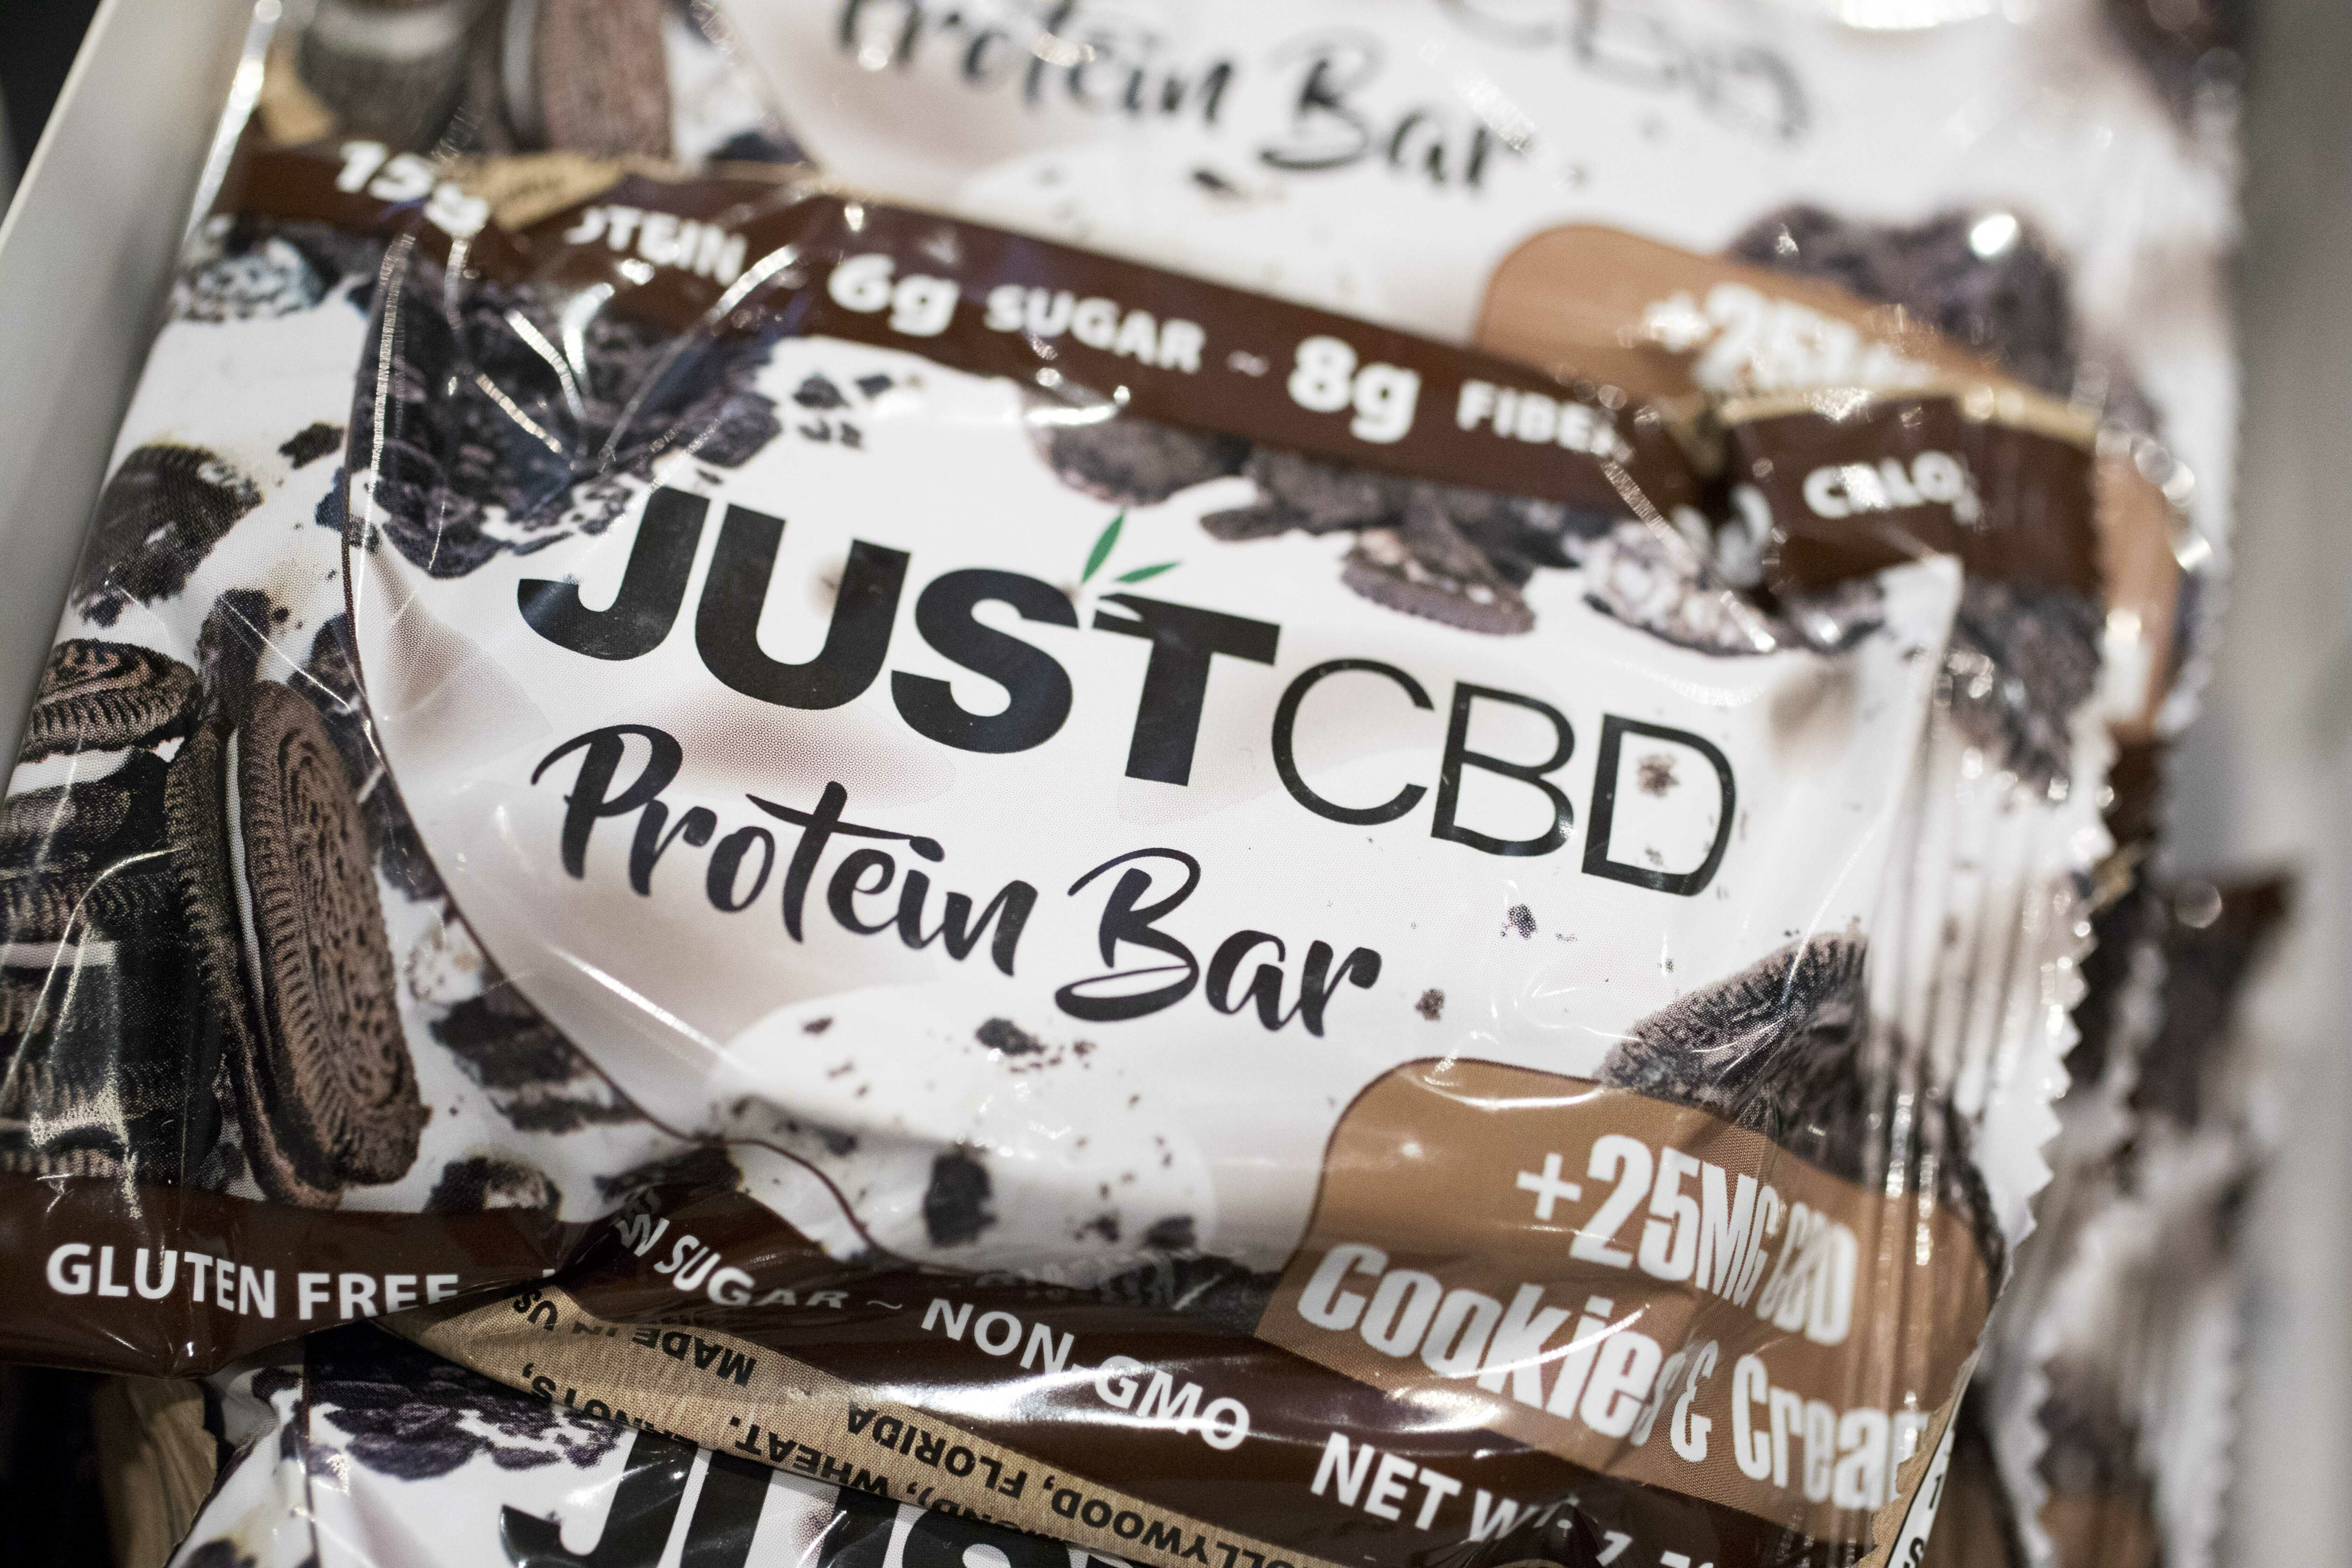 Is CBD legal? FDA holds hearing as fans, sellers await legal clarity